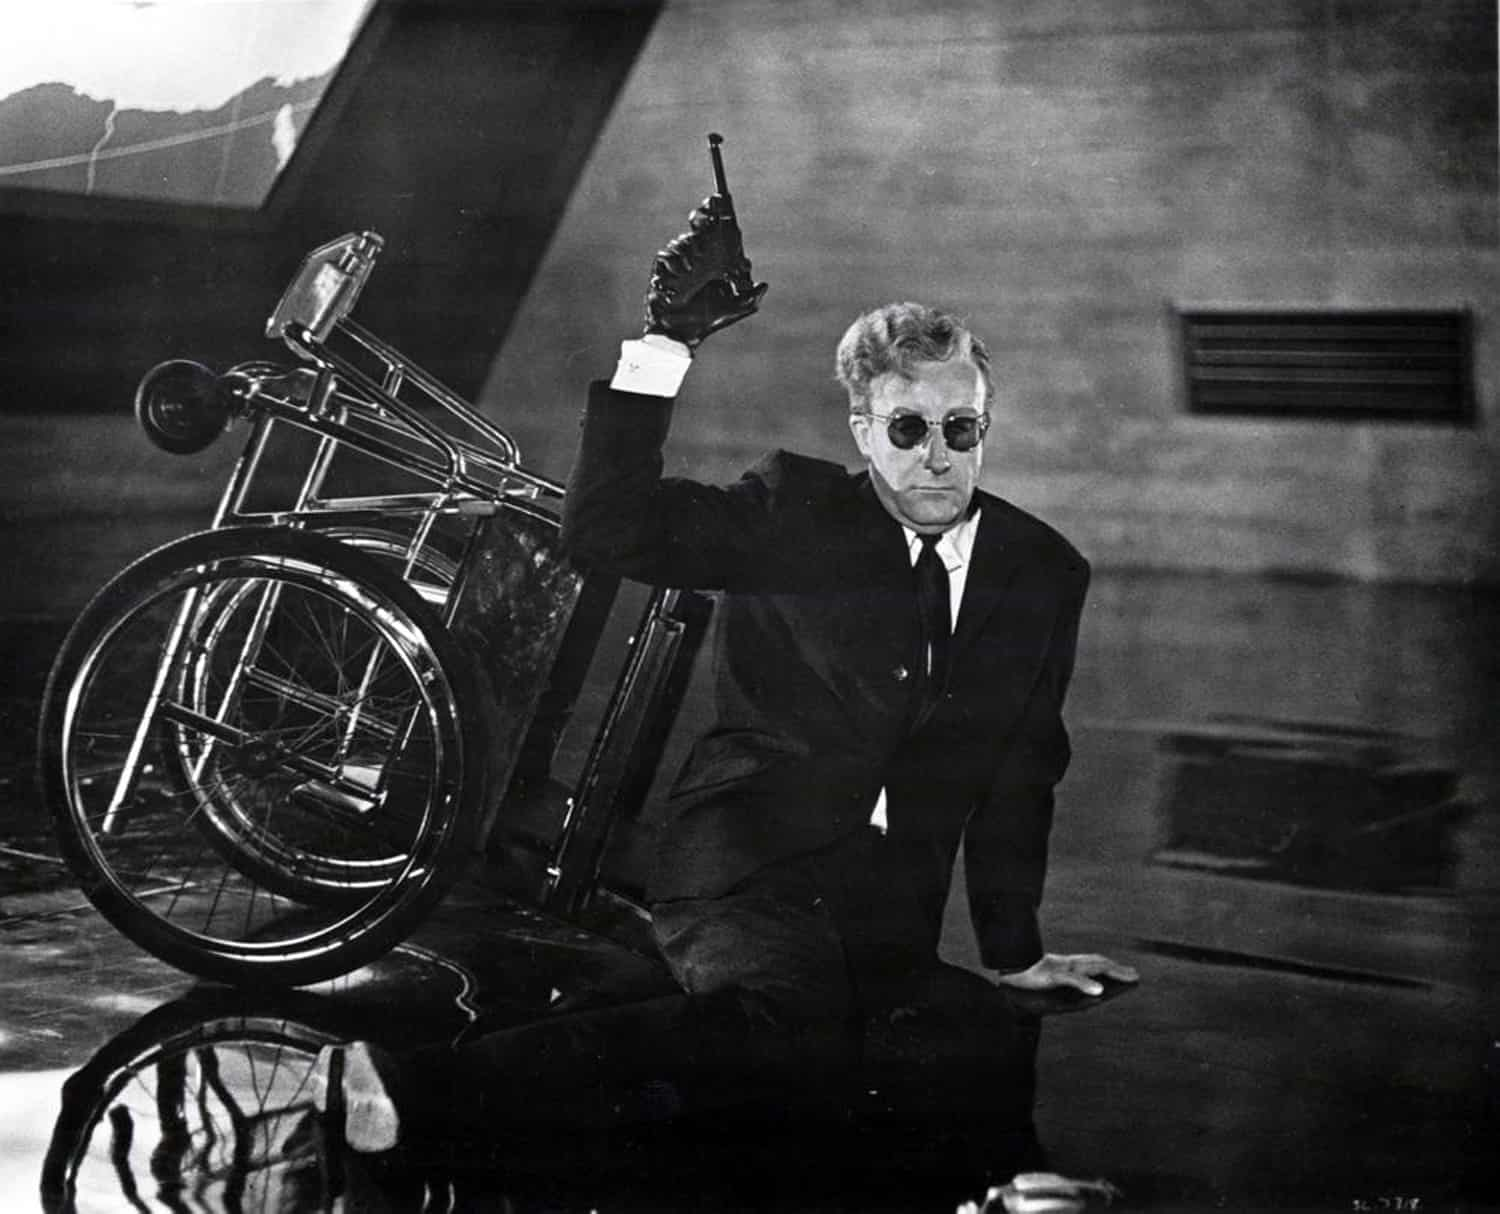 Peter Sellers as Dr Strangelove in Dr Strangelove or How I Learned to Stop Worrying and Love the Bomb (1964)